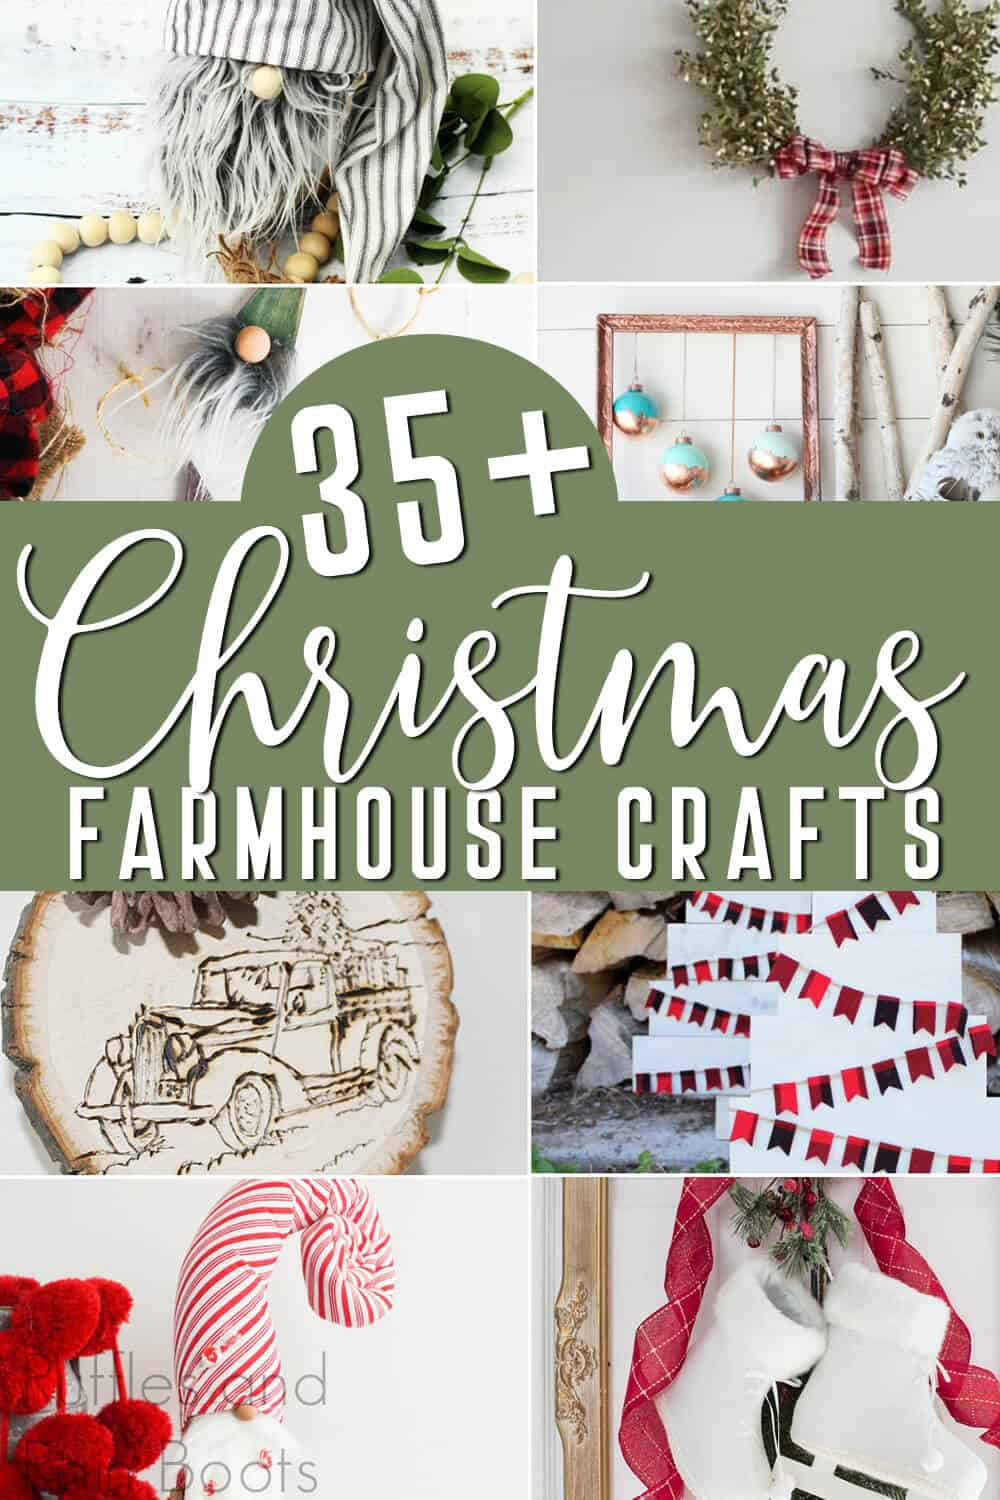 photo collage of DIY farmhouse christmas decor with text which reads 35+ christmas farmhouse crafts